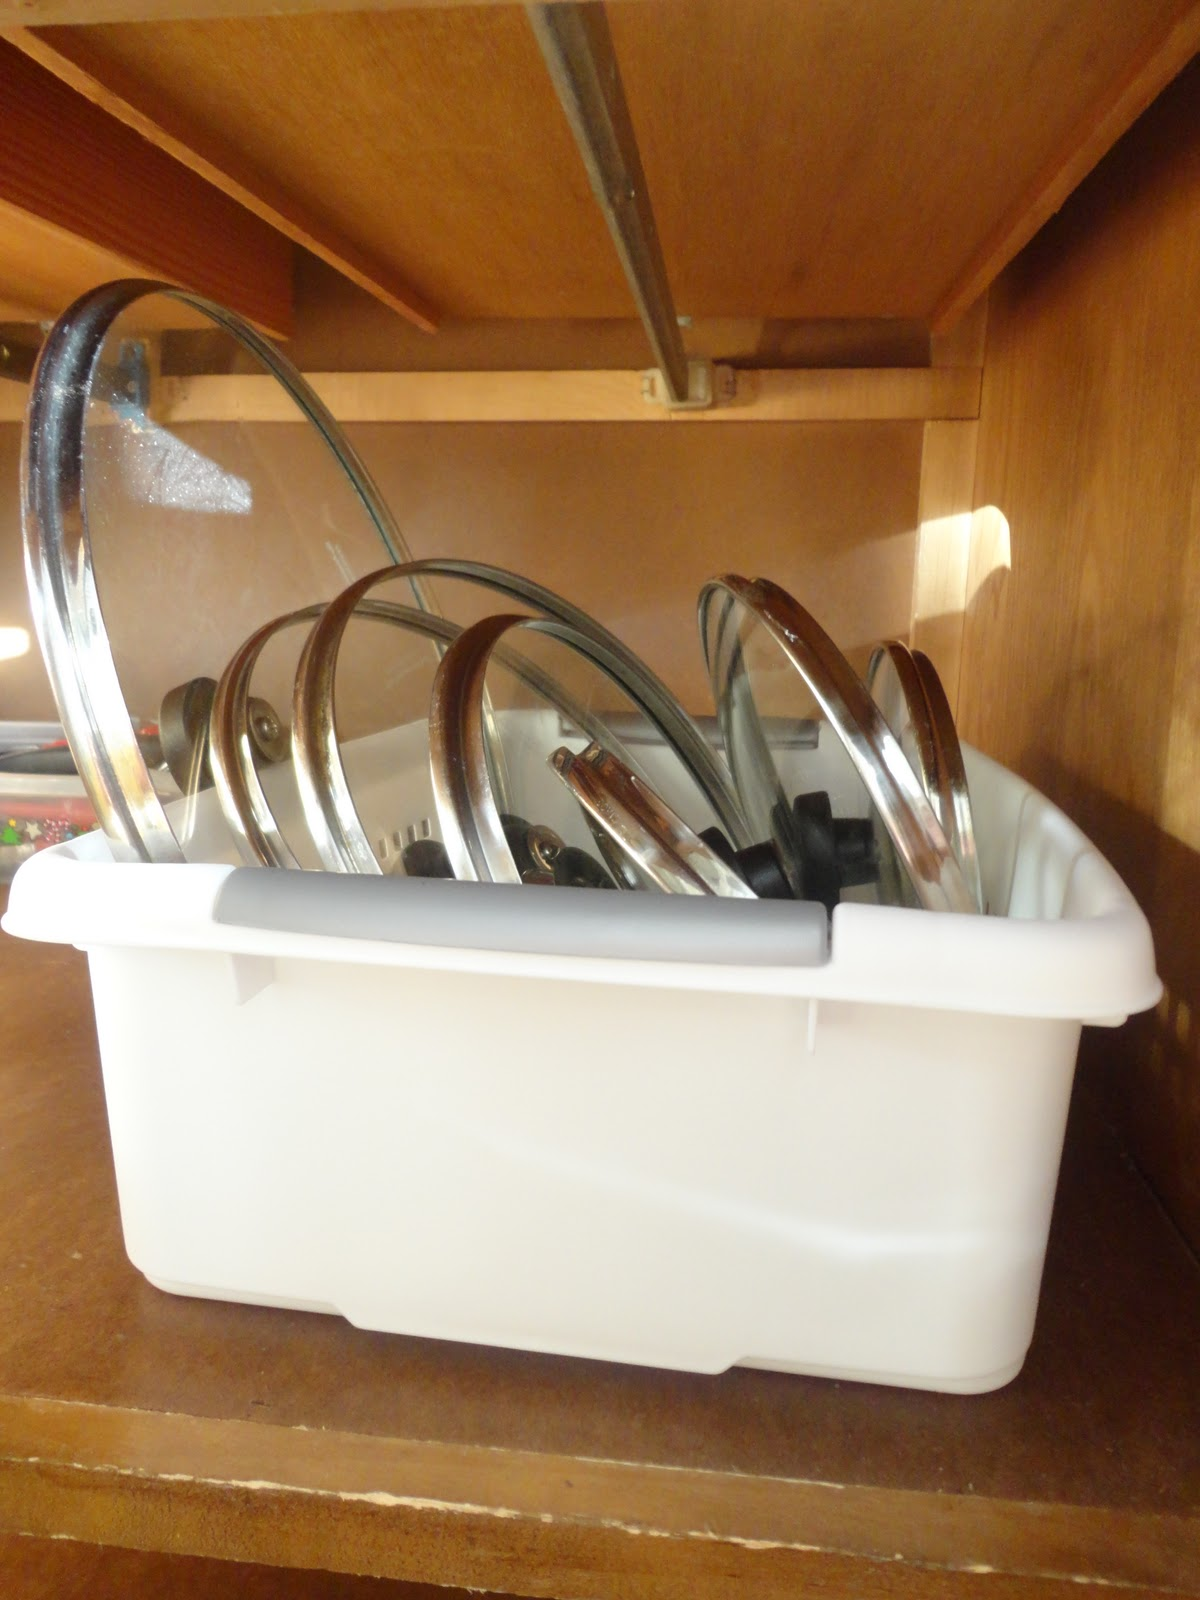 Keep lids in one location with a dish pan or other basket type container